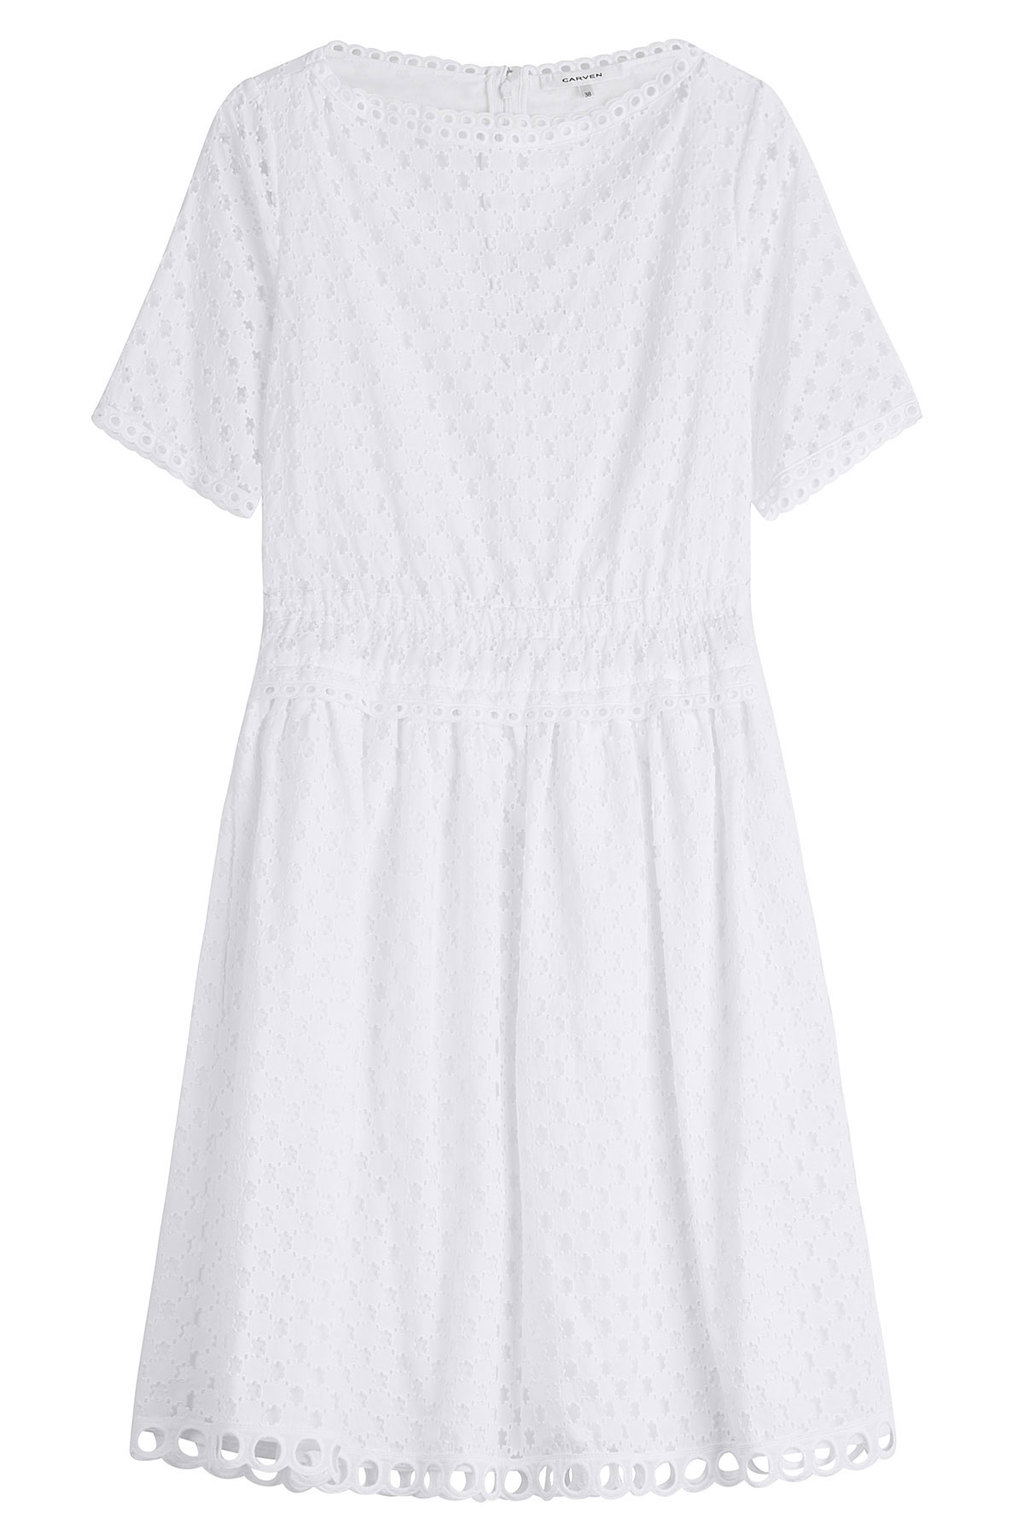 Cotton Eyelet Dress - style: shift; neckline: v-neck; predominant colour: white; occasions: casual; length: just above the knee; fit: body skimming; fibres: cotton - 100%; sleeve length: short sleeve; sleeve style: standard; pattern type: fabric; pattern: patterned/print; texture group: broiderie anglais; season: s/s 2016; wardrobe: highlight